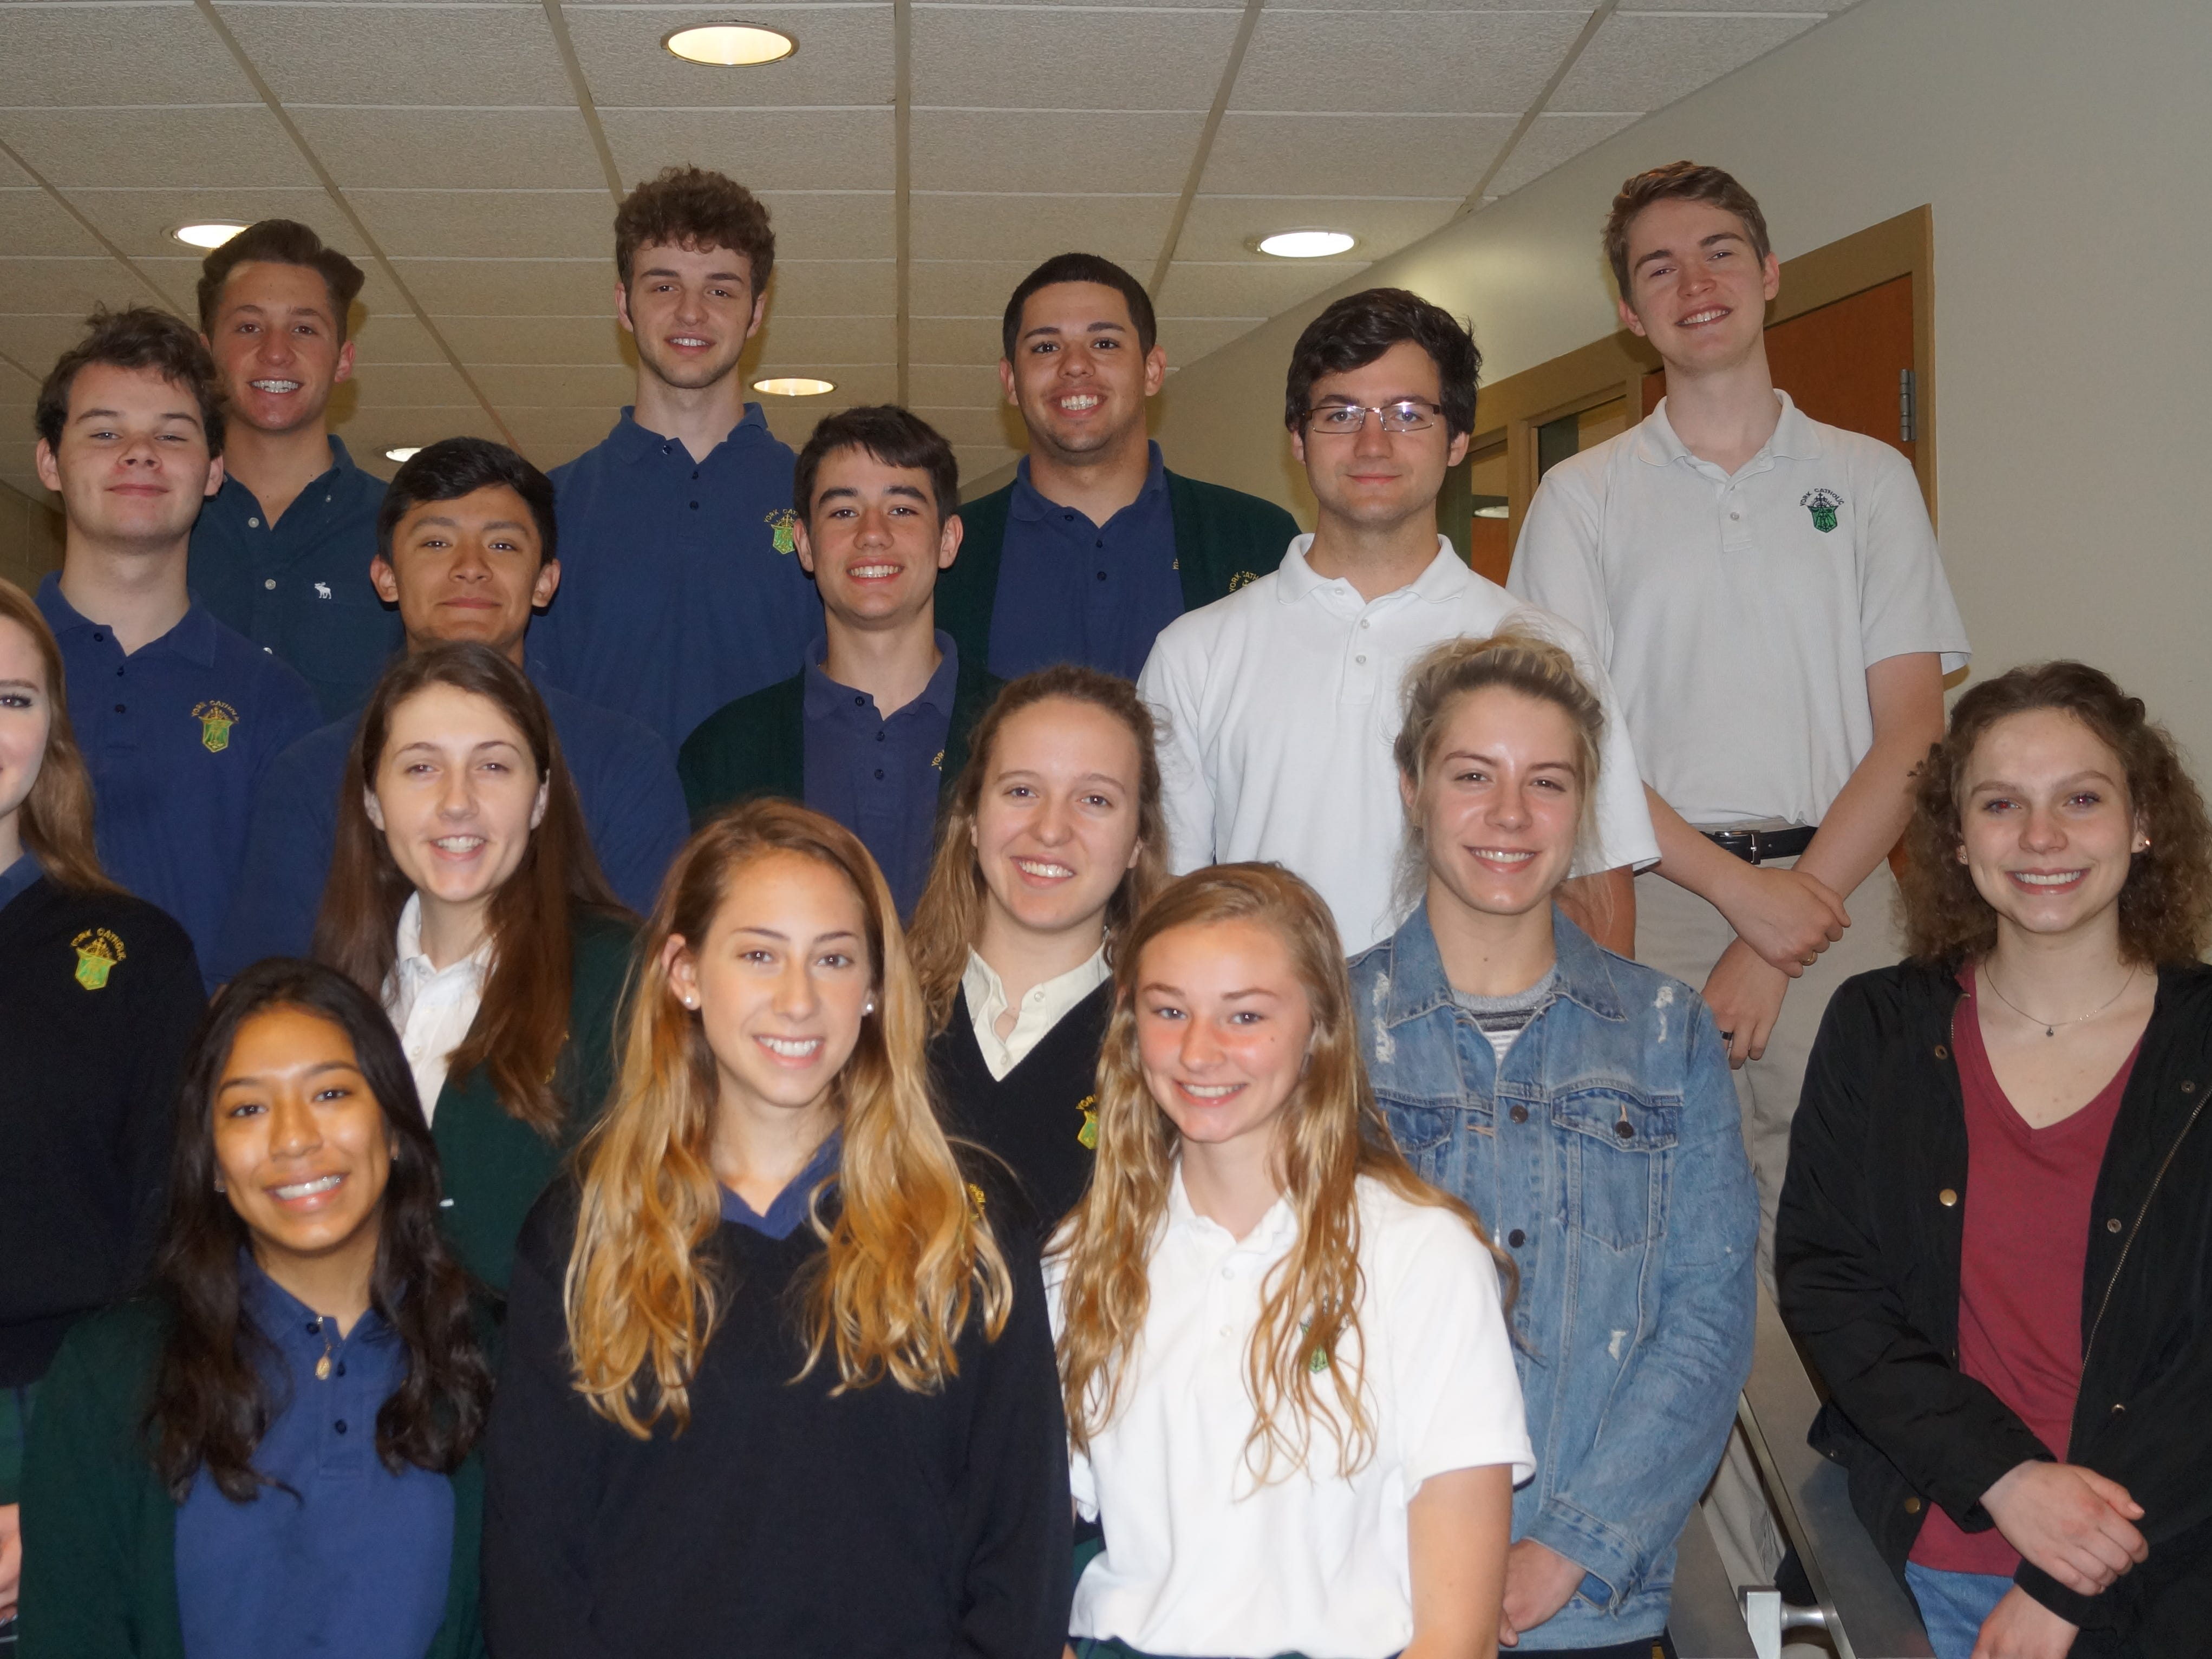 The following seniors were named to York Catholic High School's 2019 Prom Court. Pictured from left: Row 1:  Cindy Hernandez, Megan Daugherty, Kaylee Bandow. Row 2:  Lydia Fullerton, Anna Fraser, Renee Bonner, Sarah Reed, Claire Laux. Row 3:  Josh Dietrich, Manny Montes, Matthew Cassidy, Brice Leidy. Row 4:  Christian Thole, Sammy Trapeni, Jack Griffin, Tony Staub, Logan Corbin. Not pictured: Katy Rader. Christian Thole and Anna Fraser were announced as king and queen prior to the start of the Prom held at Wisehaven Hall. submitted